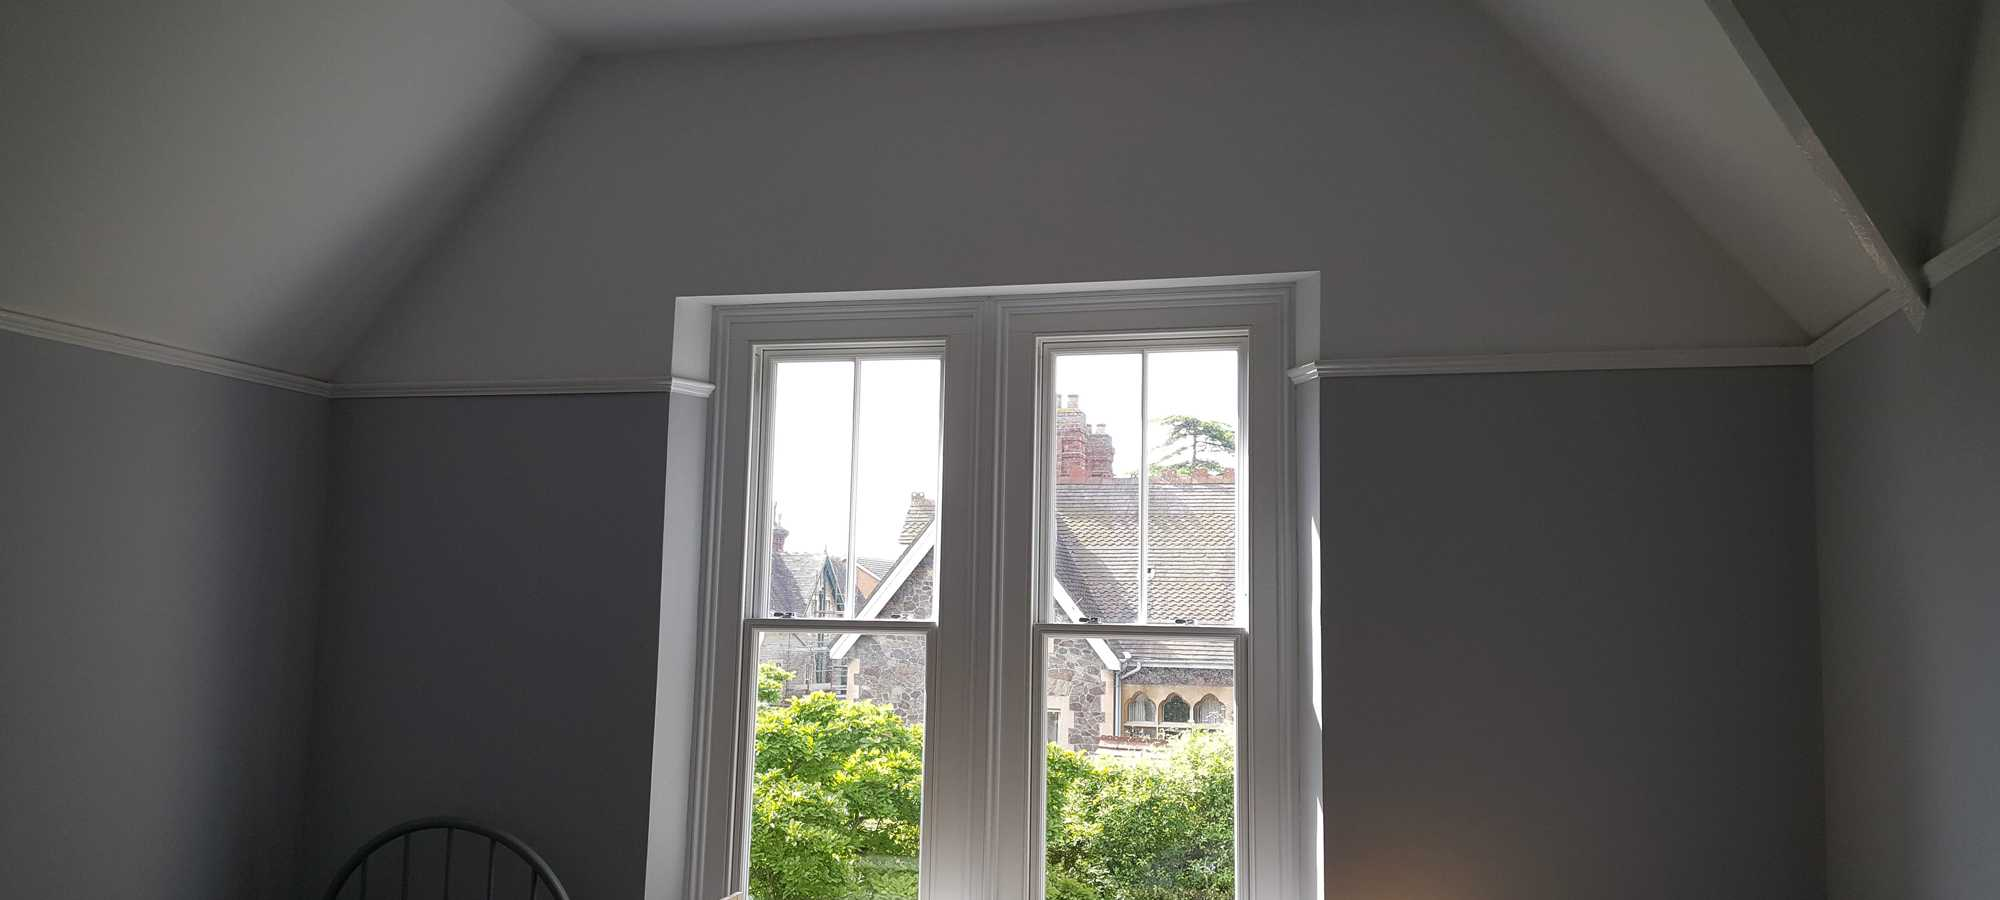 Newly refurbished and renovated bedroom, which has been completely redecorated